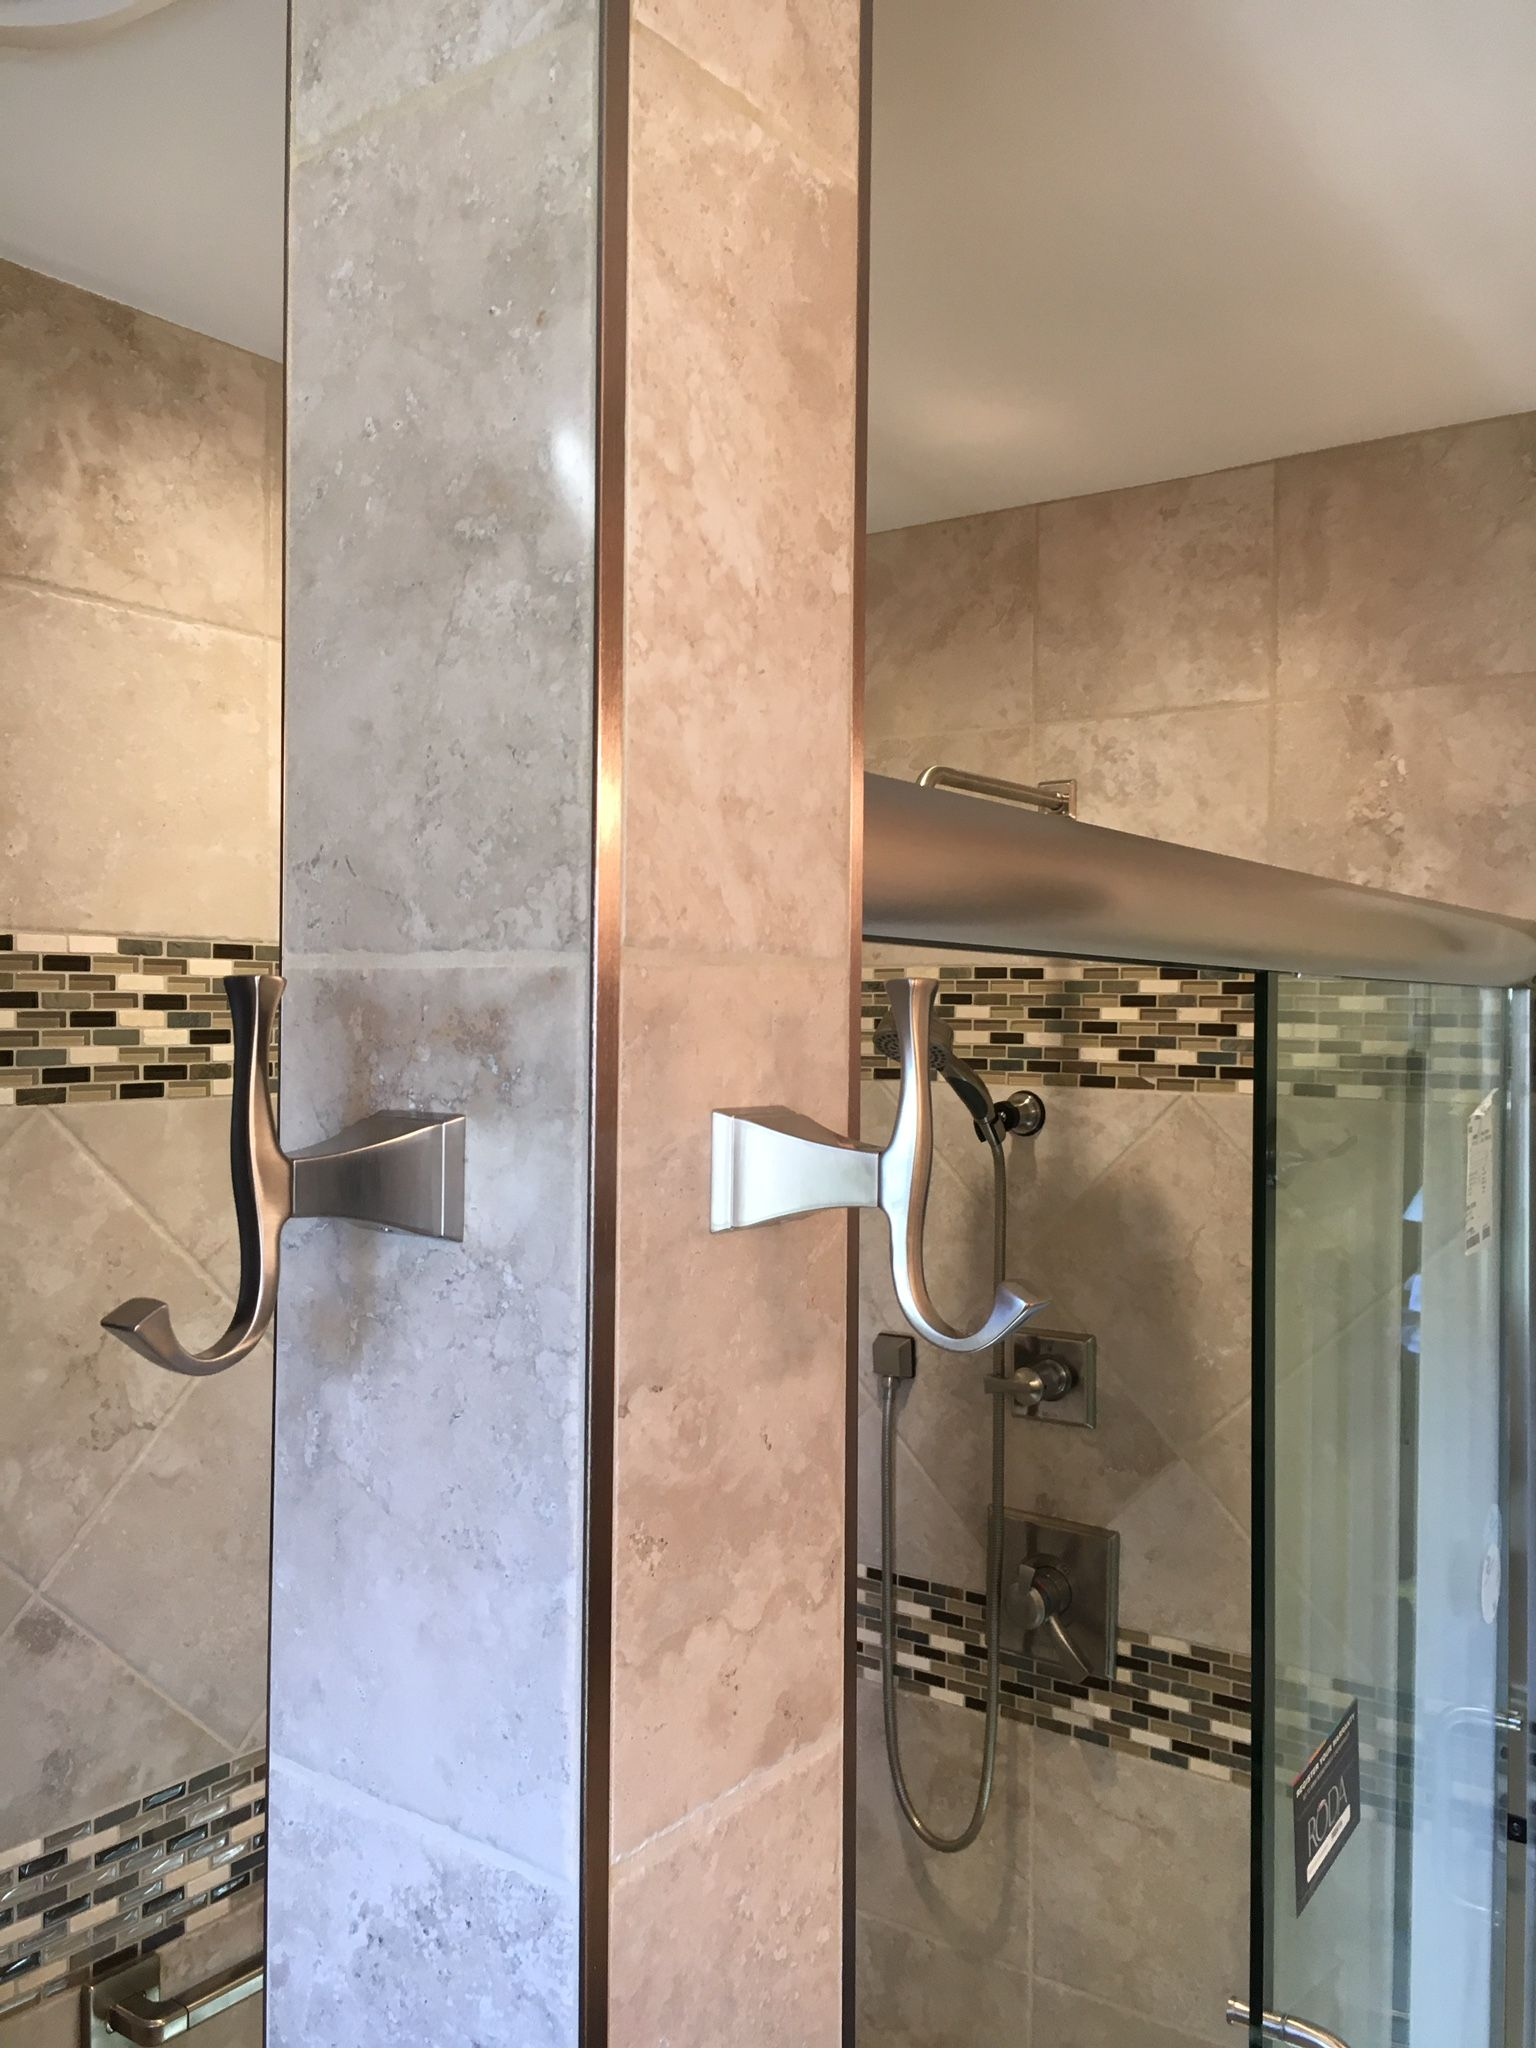 Stainless Steel Bathroom Accents With Metal Schluter Strips To